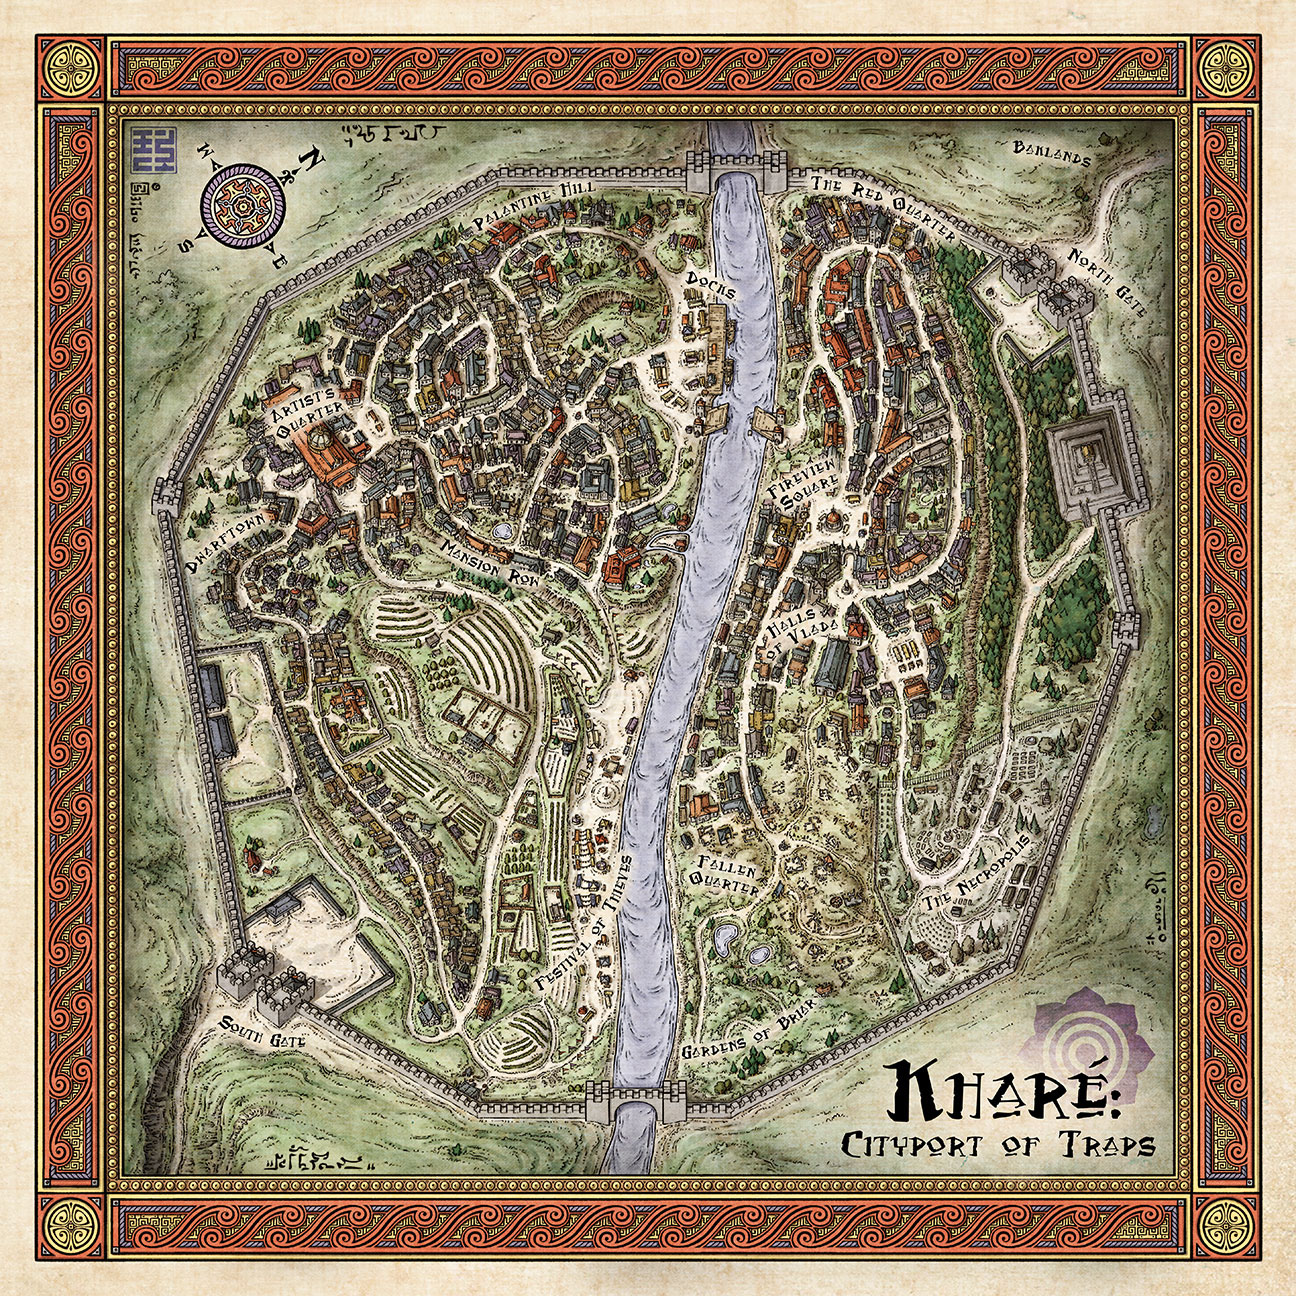 Map of Khare